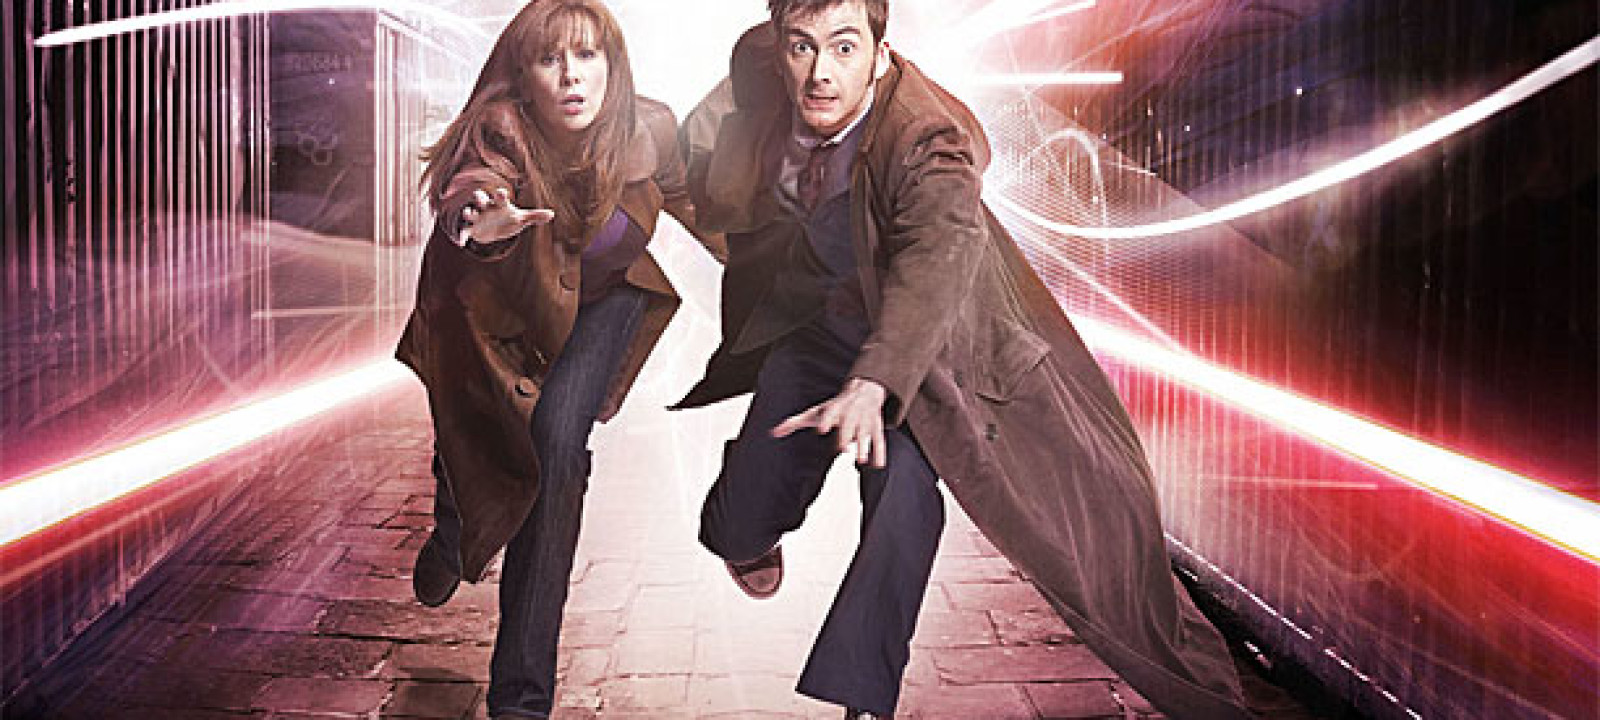 Catherine Tate and David Tennant in 'Doctor Who'